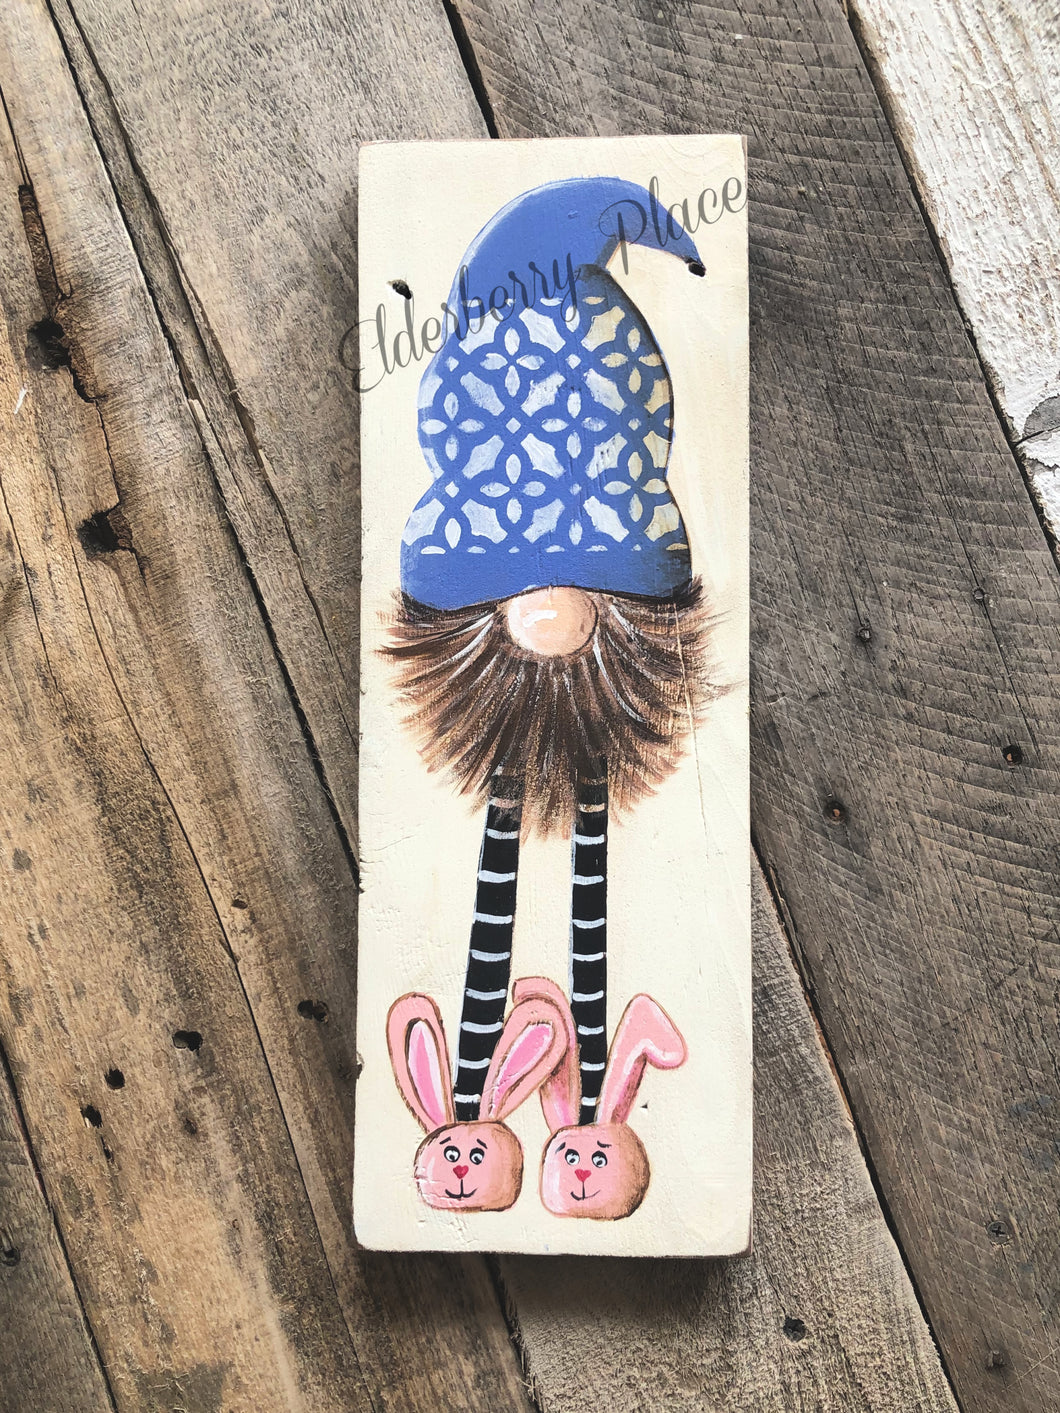 Gnome  - Medium Size with Bunny Slippers - 15